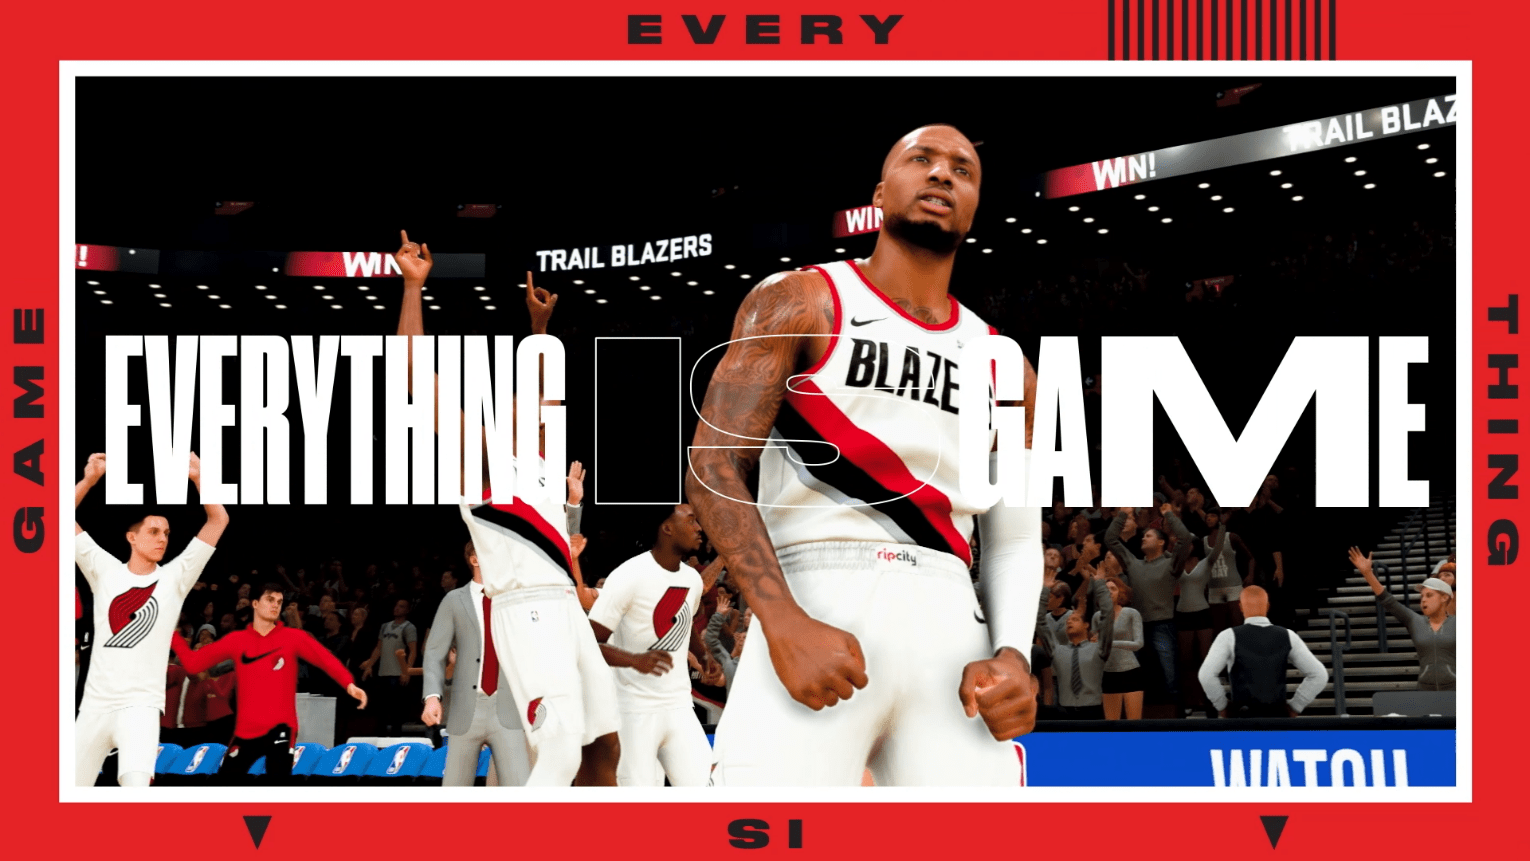 See Why Everything Is Game In The New Nba 2k21 Gameplay Trailer Nba News Nba News Nba Gameplay